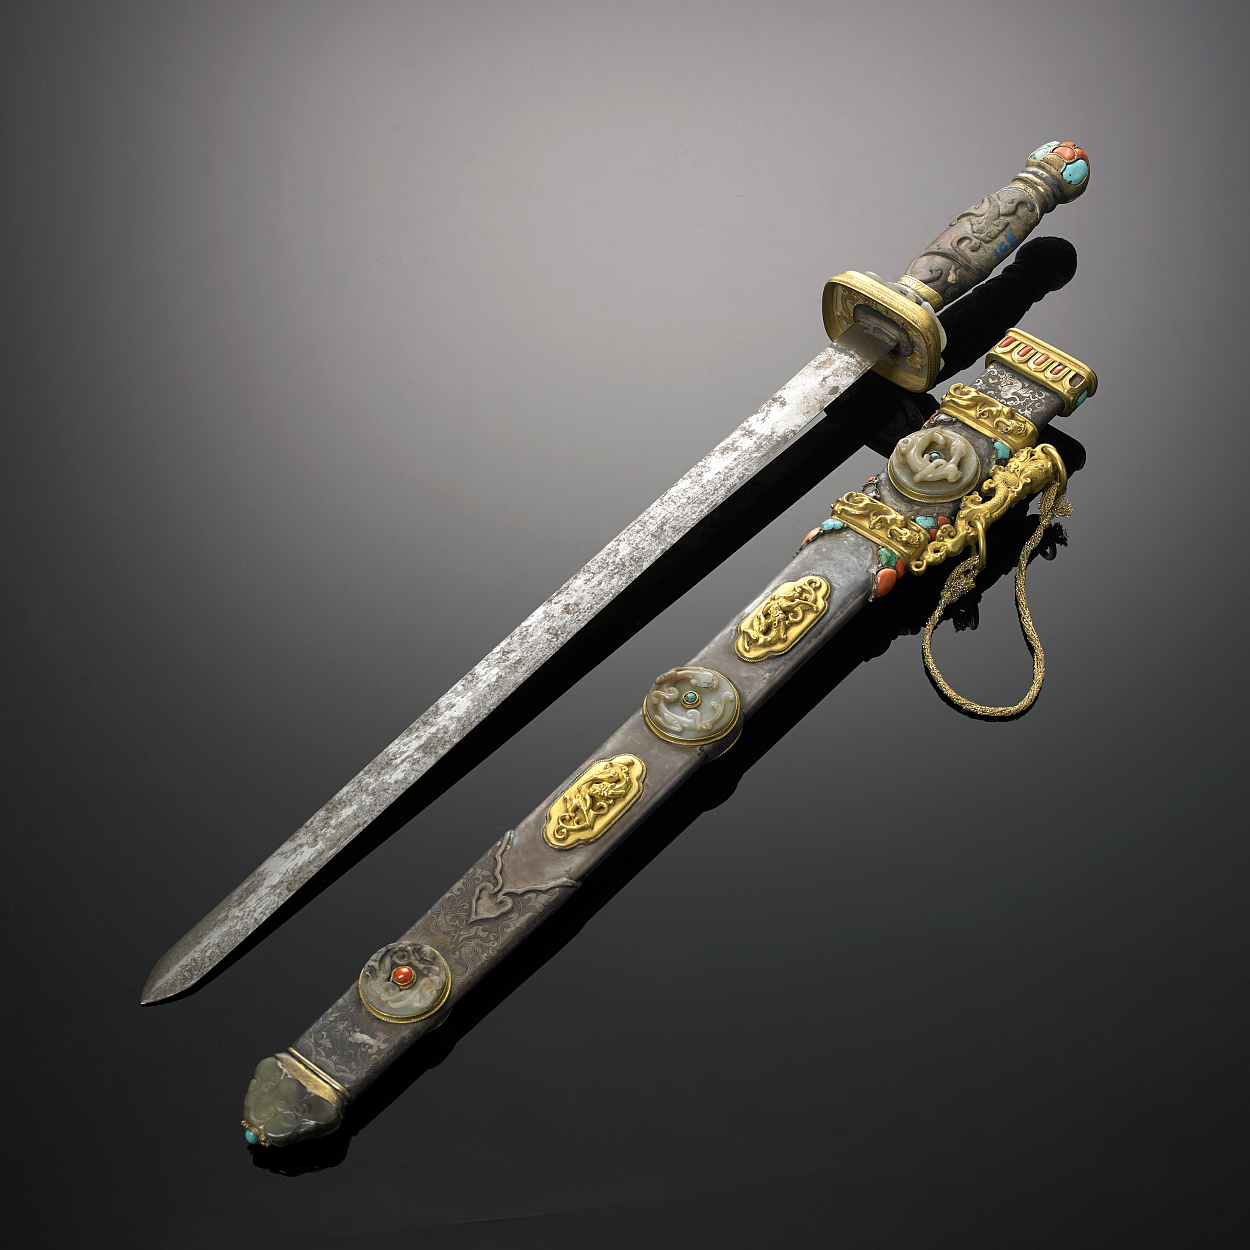 A Tibetan Ceremonial Sword